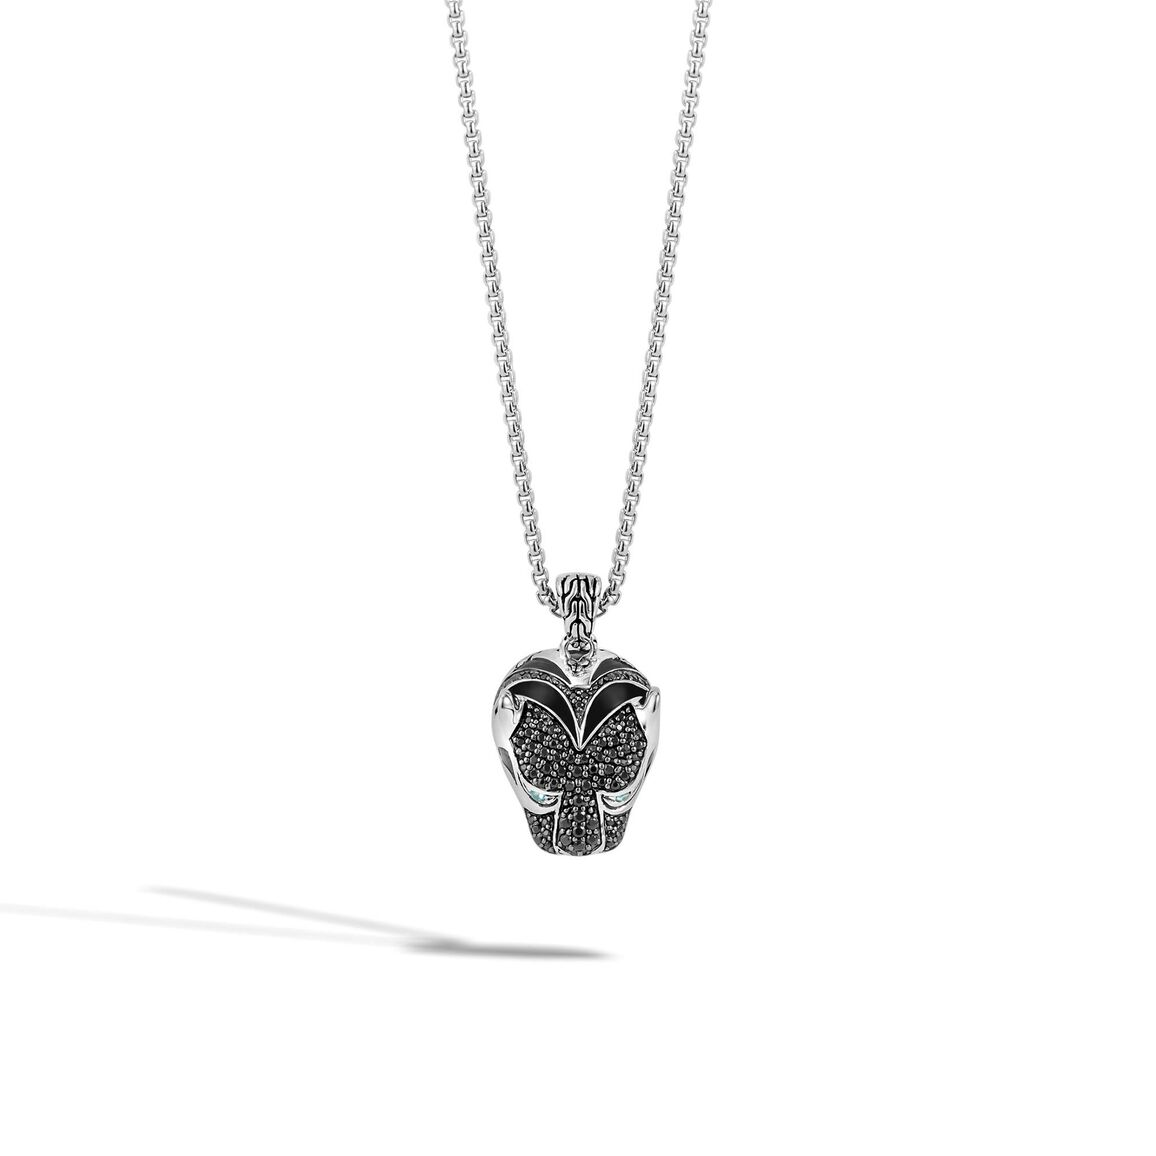 Legends Macan Pendant Necklace in Silver with Gemstone